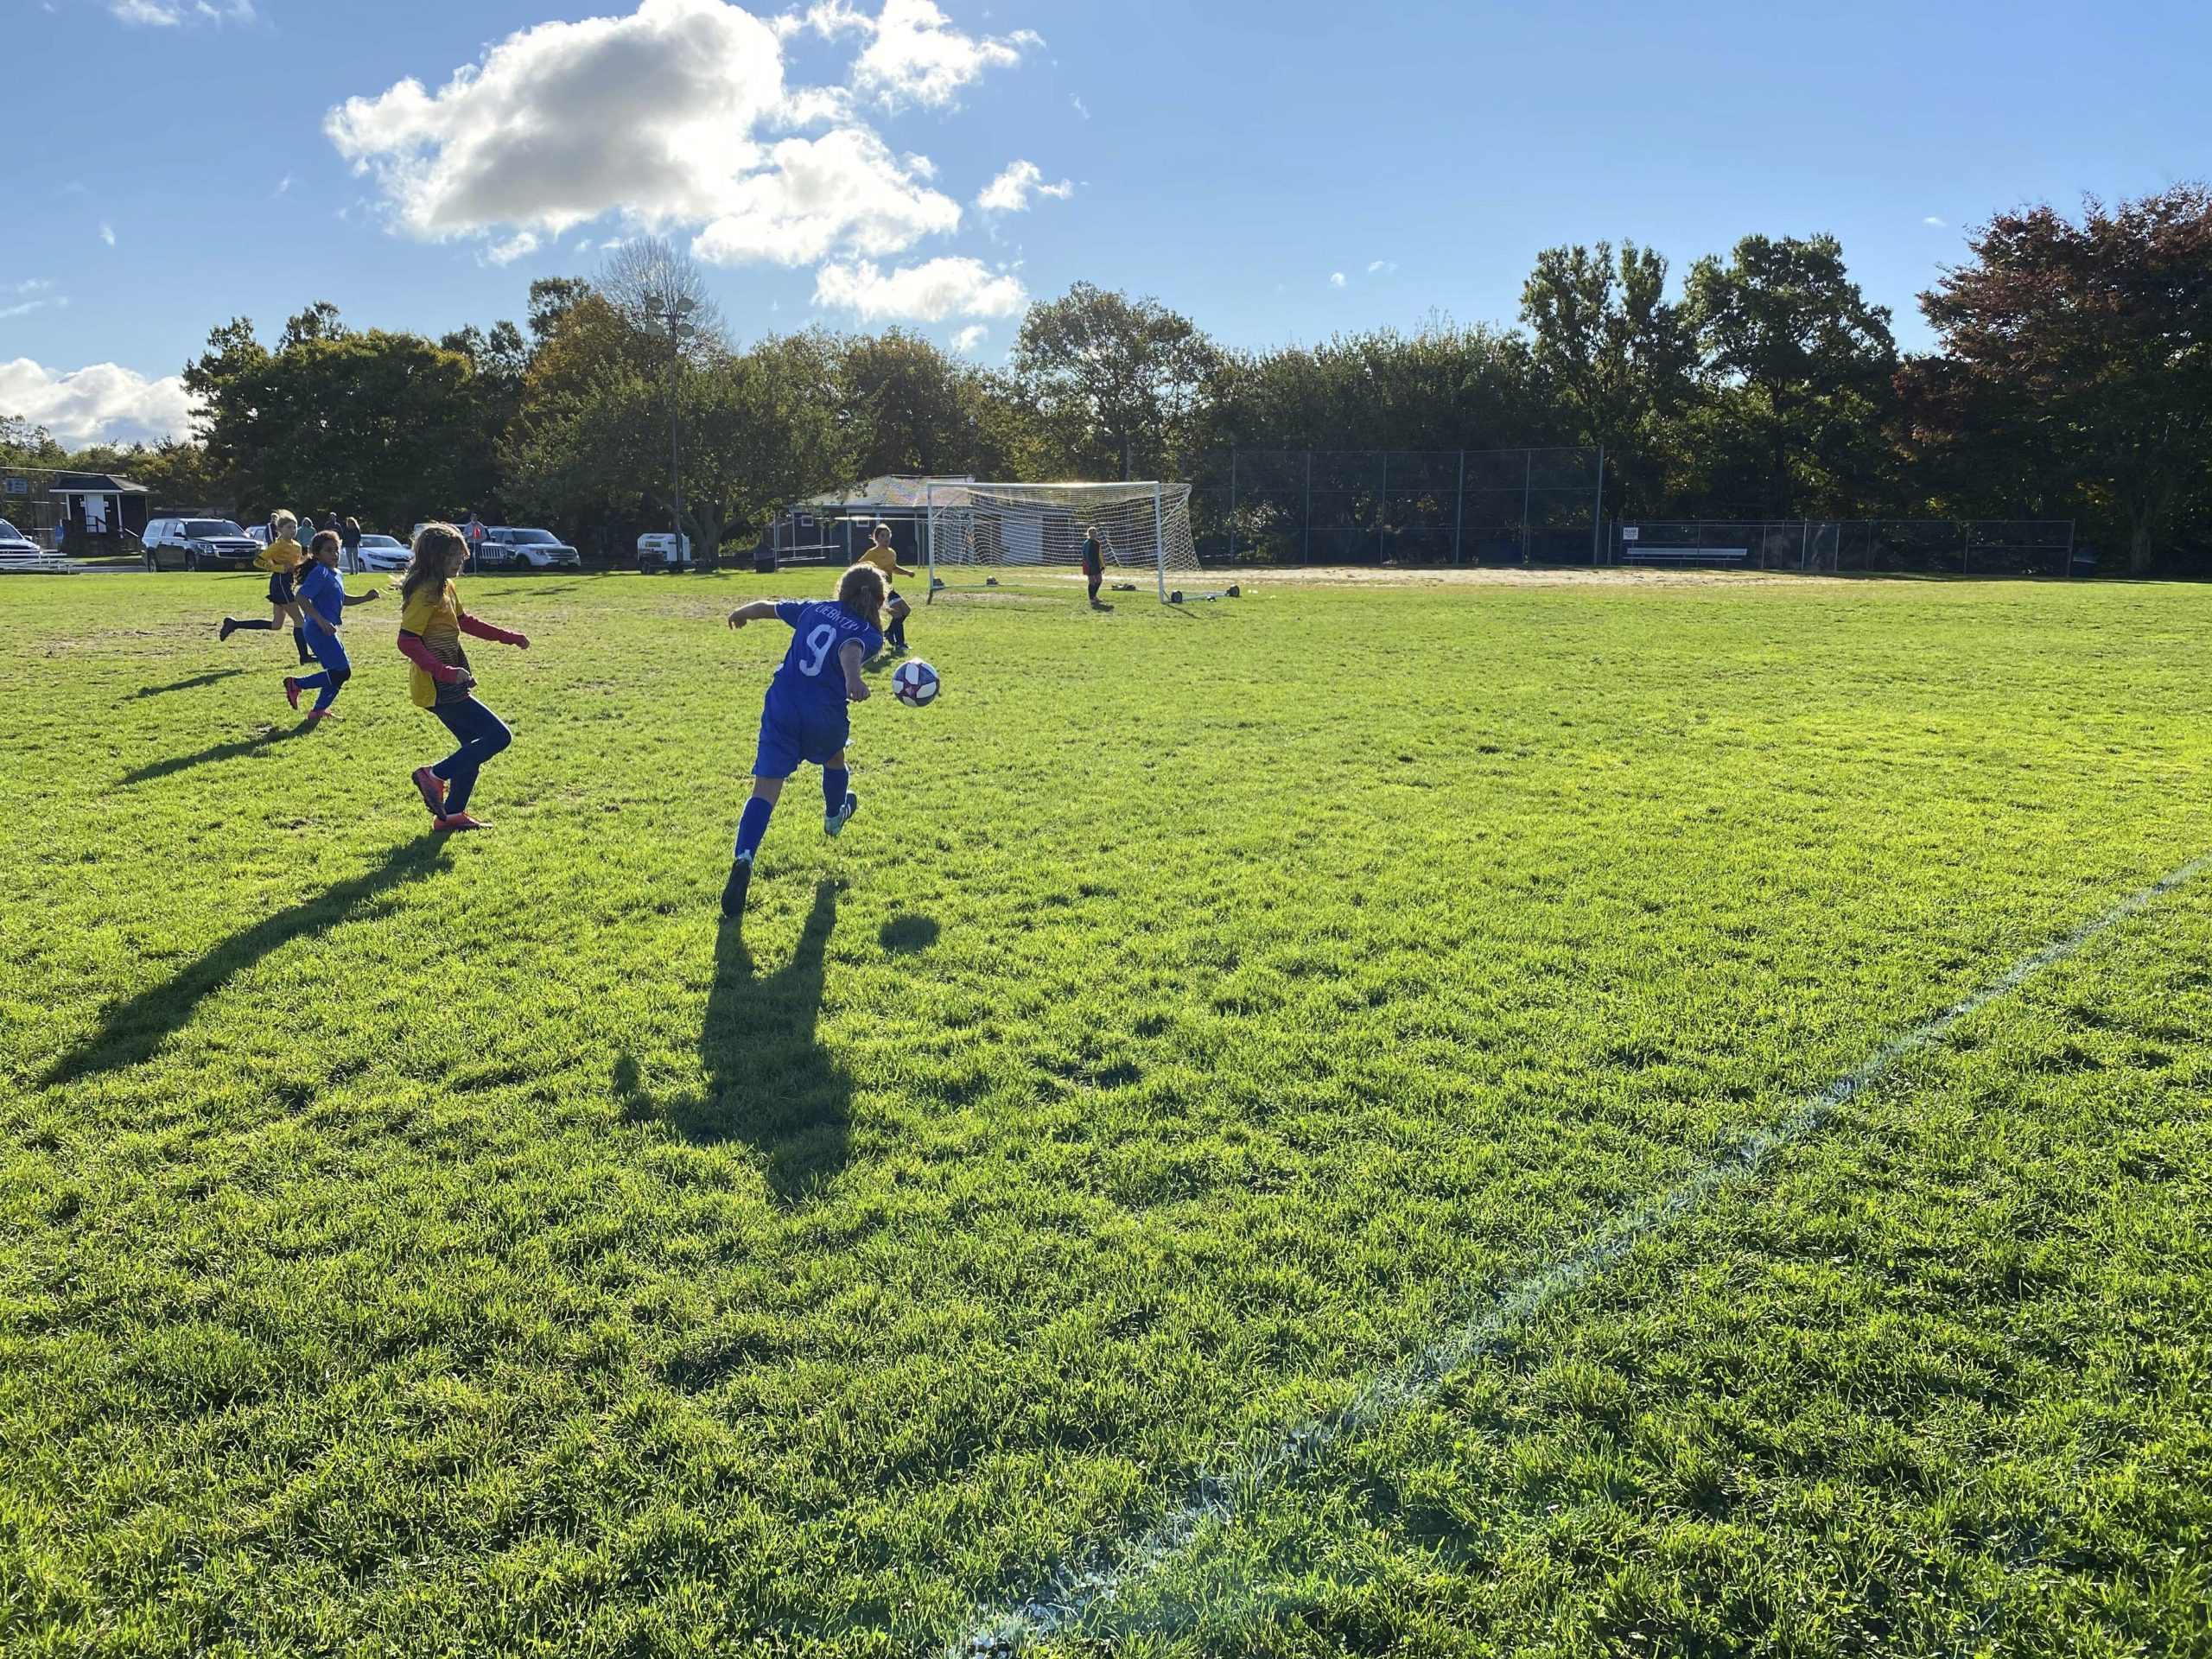 Southampton Soccer Club players were happy to be back on the field this fall, with Covid safety measures in place, after the cancellation of the season in the spring.